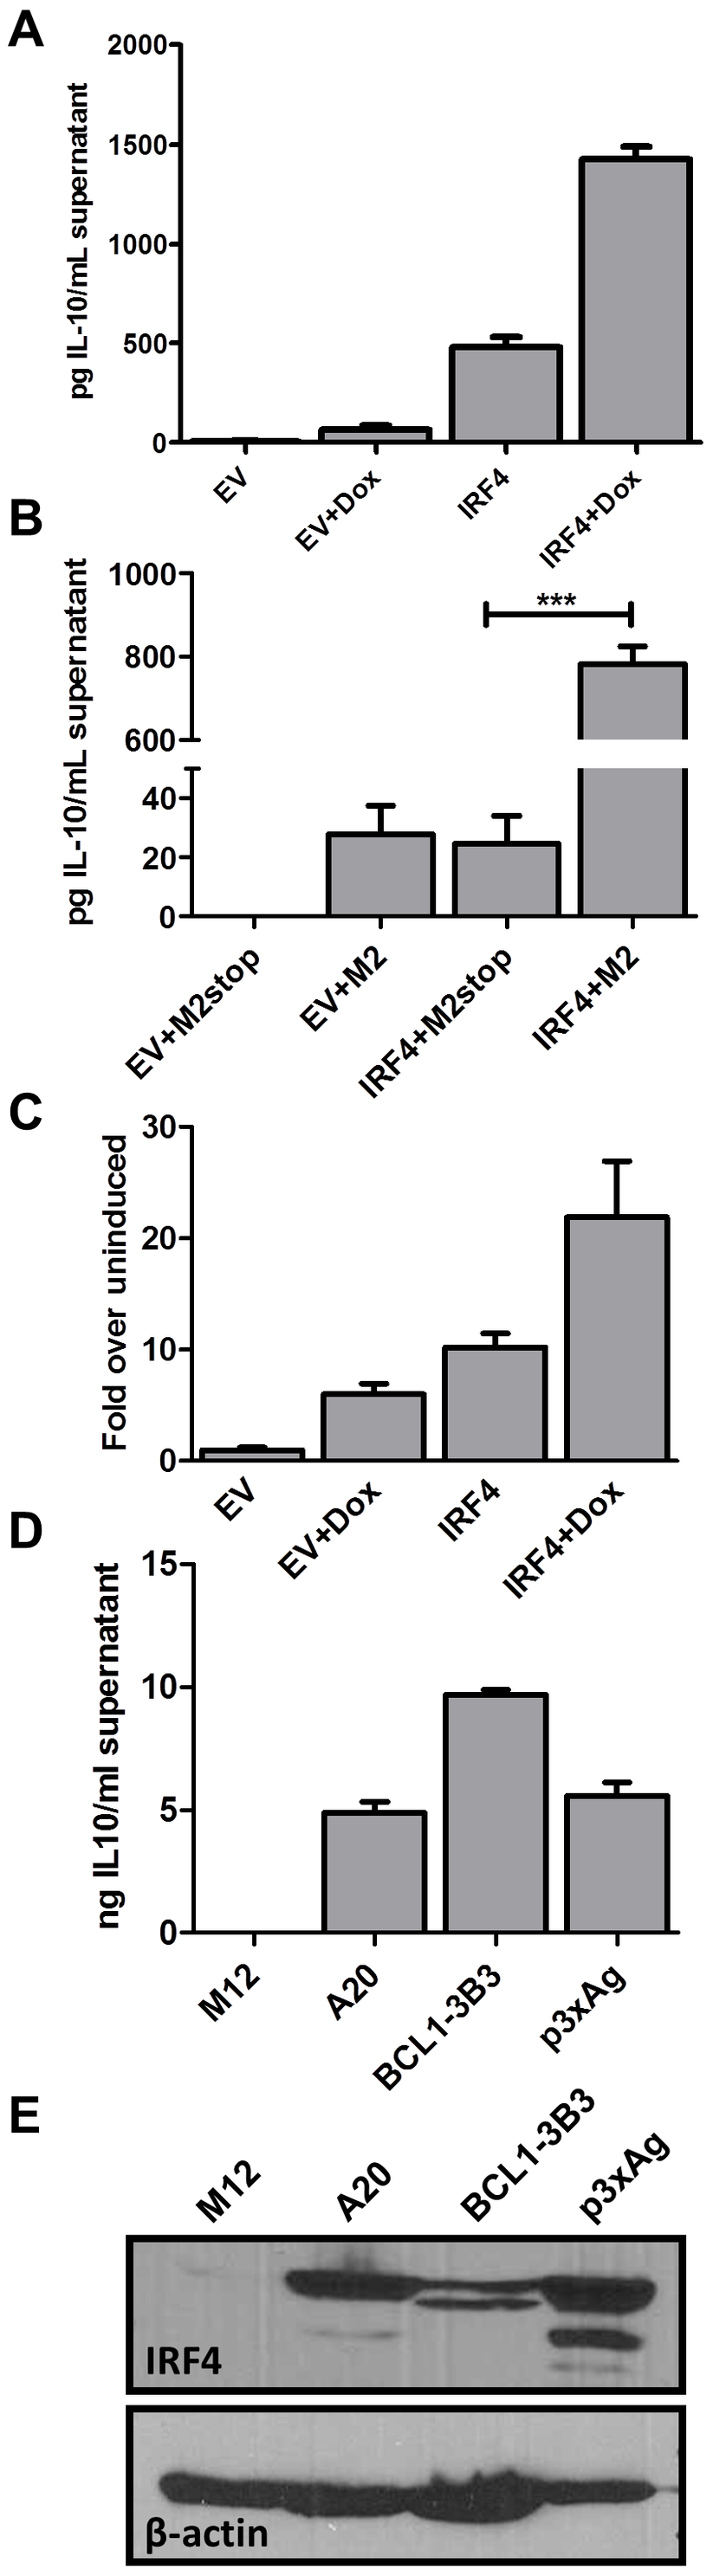 IRF4 expression in B cells leads to IL-10 secretion and M2 synergizes with IRF4 to enhance IL-10 levels.